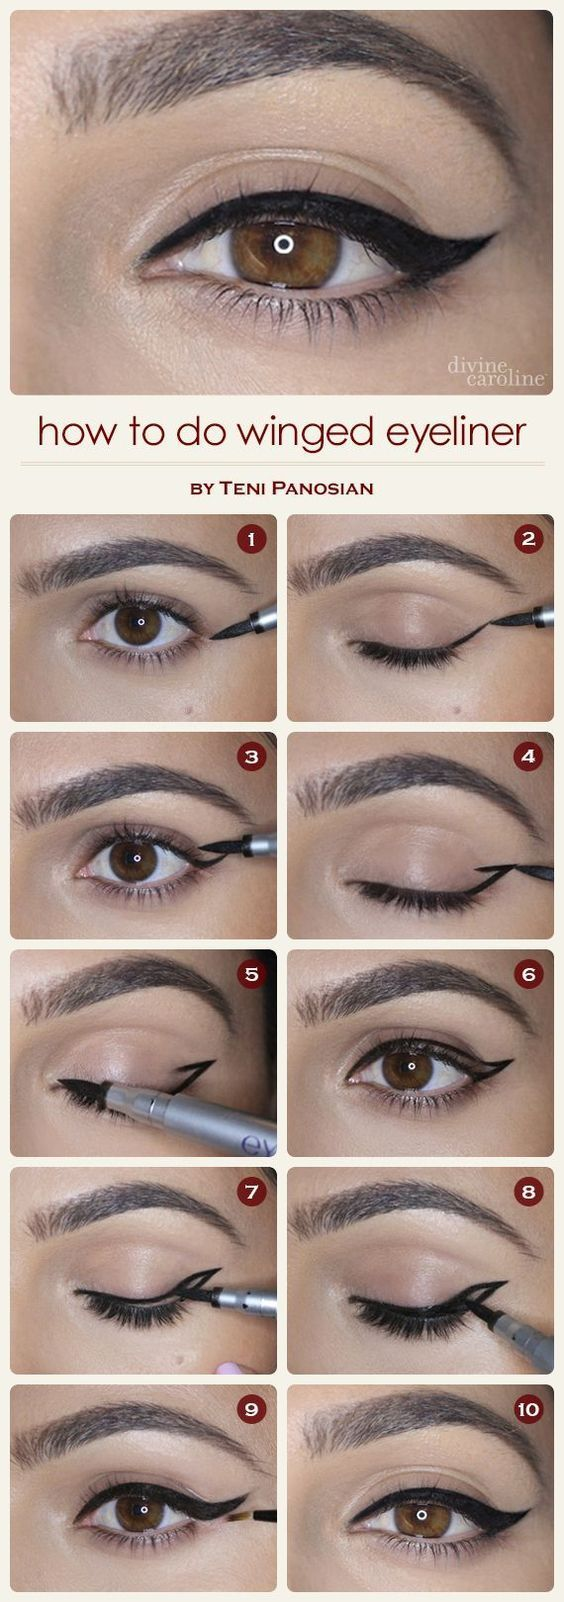 How to Do Winged Eyeliner | Easy Step By Step Tutorial on How to Achieve Perfect Cat-Eye Liner | For More Great Makeup Tips & Advice Visit makeuptutorials.com/.: